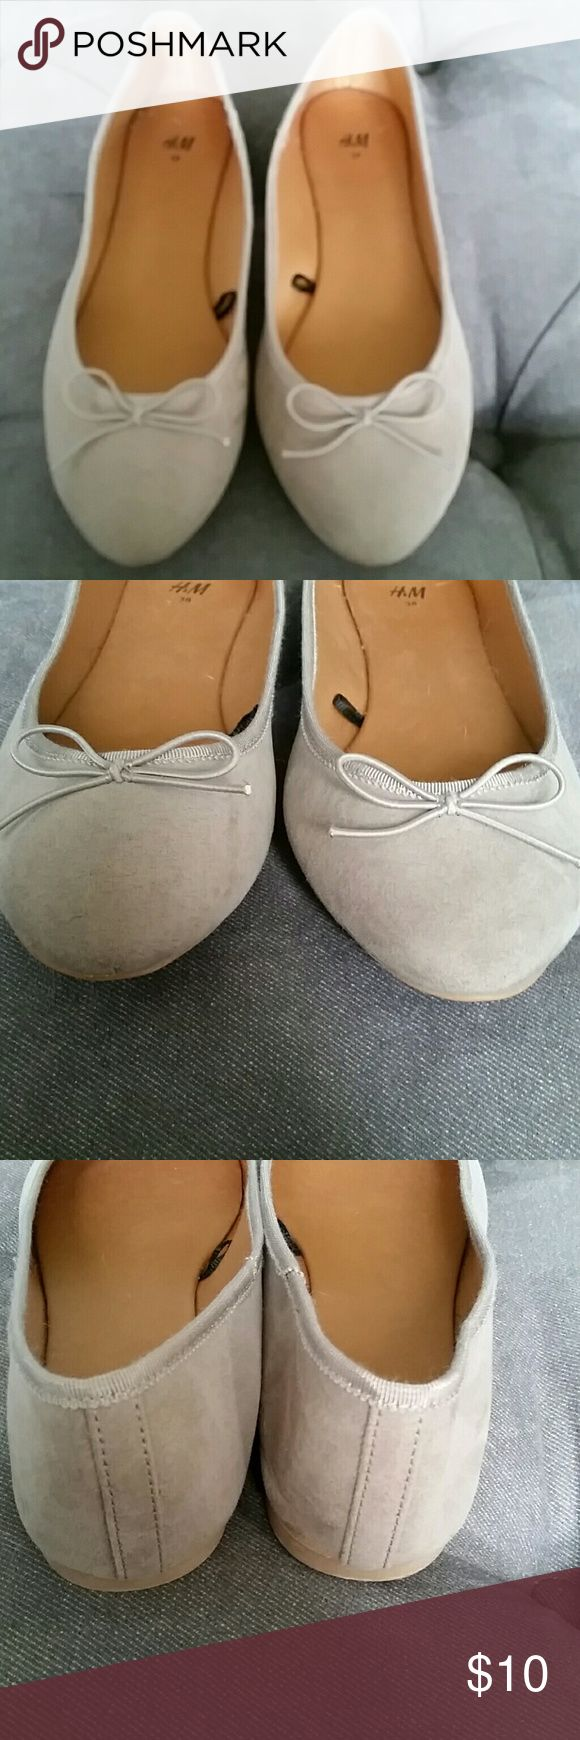 H&M neutral ballet flats size 8 Neutral greige faux suede ballet flats from H&M. Nearly new, only wear is to out sole. Size 8 H&M Shoes Flats & Loafers